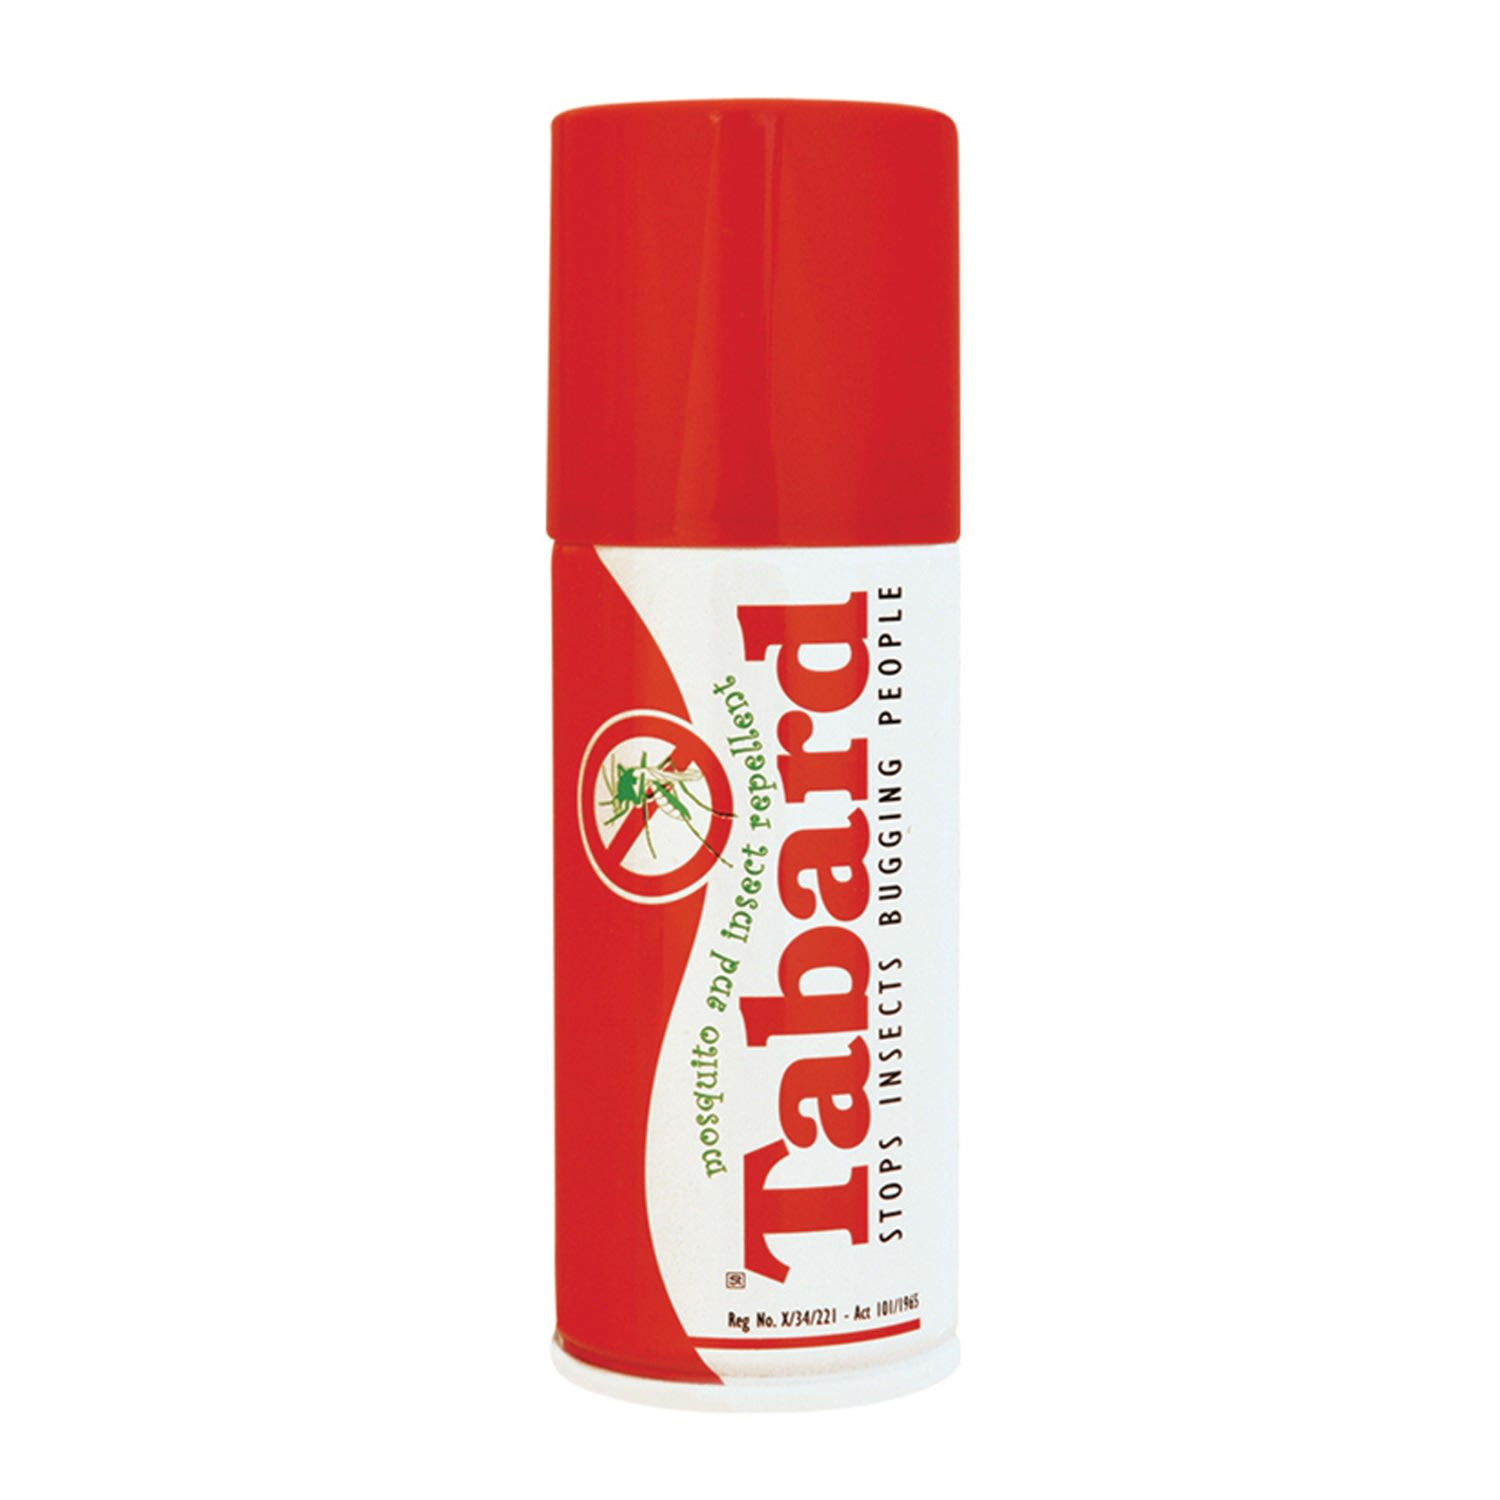 Tabard Spray 70g